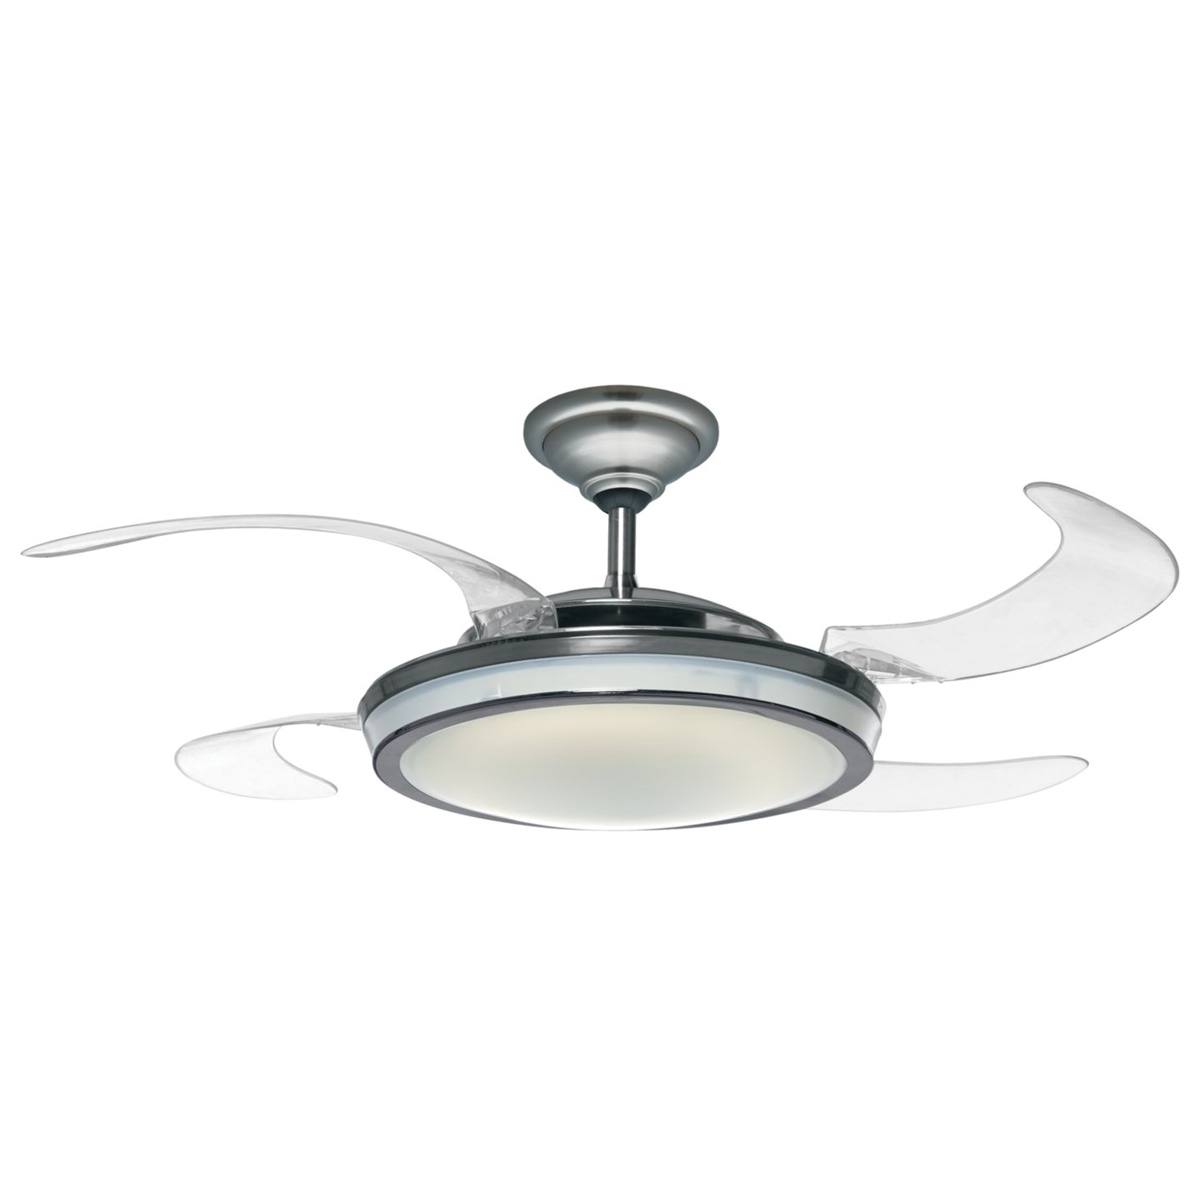 pendant light ceiling fan photo - 3